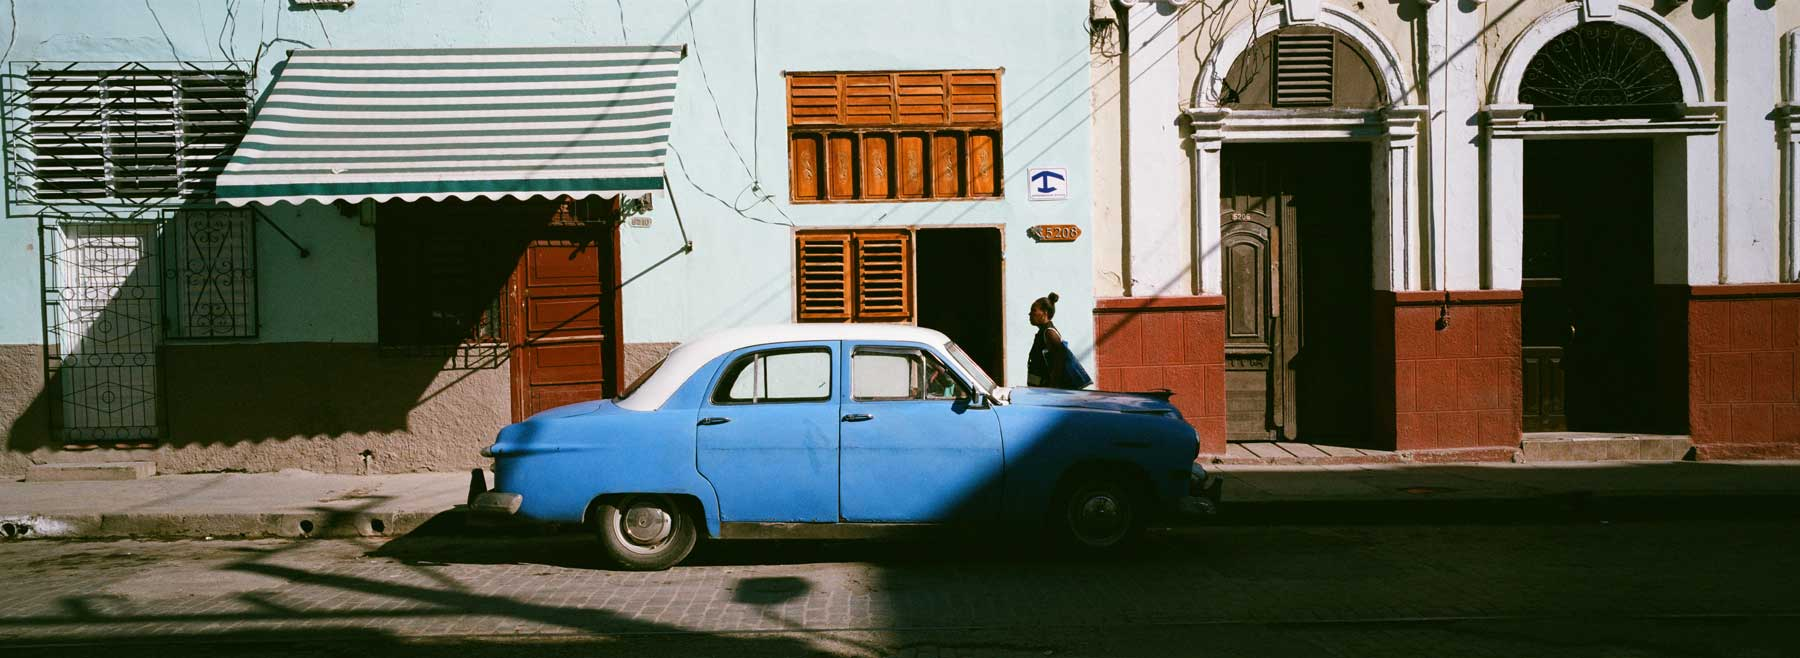 hasselblad-xpan-ii-review-hassel-rangefinder-camera-film-camera-review-photography-pano-panorama-panoramic-45mm-f4-classic-vintage-car-cienfuegos-cuba-town-walk-down